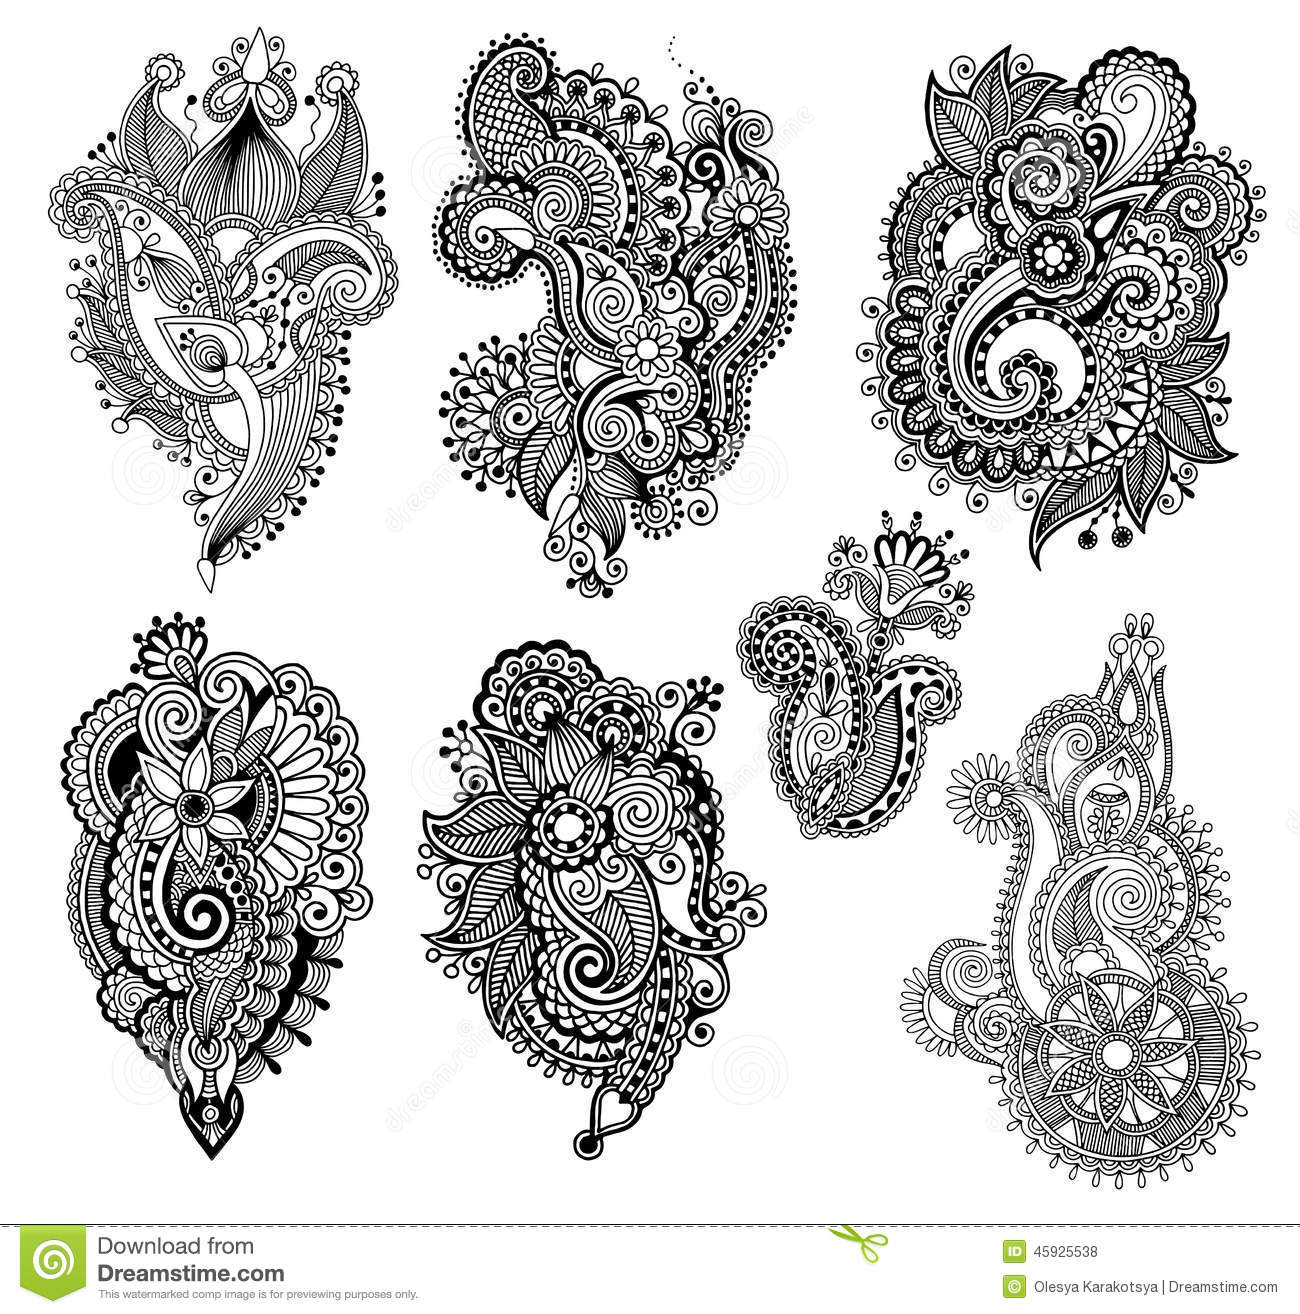 Line Art Typography : Black line art ornate flower design collection stock